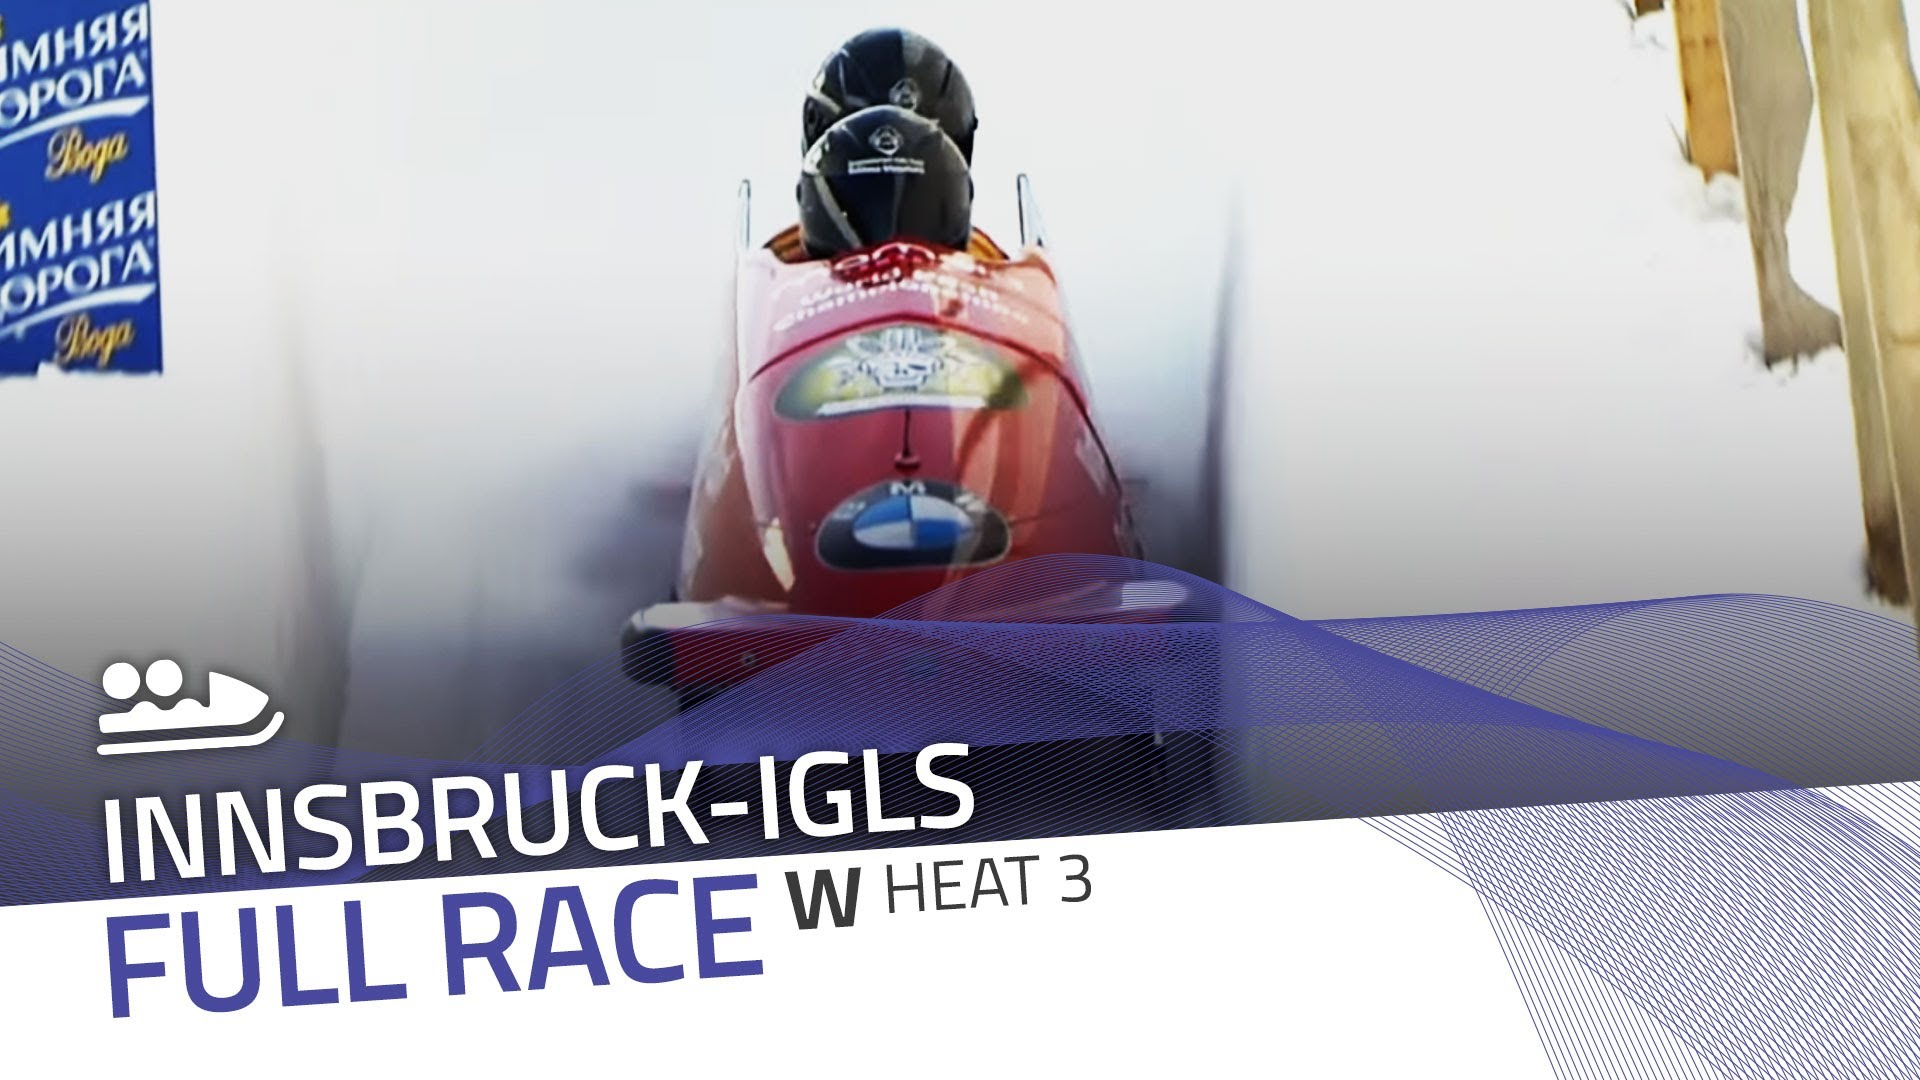 Innsbruck-igls | bmw ibsf world championships 2016 - women's bobsleigh heat 3 | ibsf official